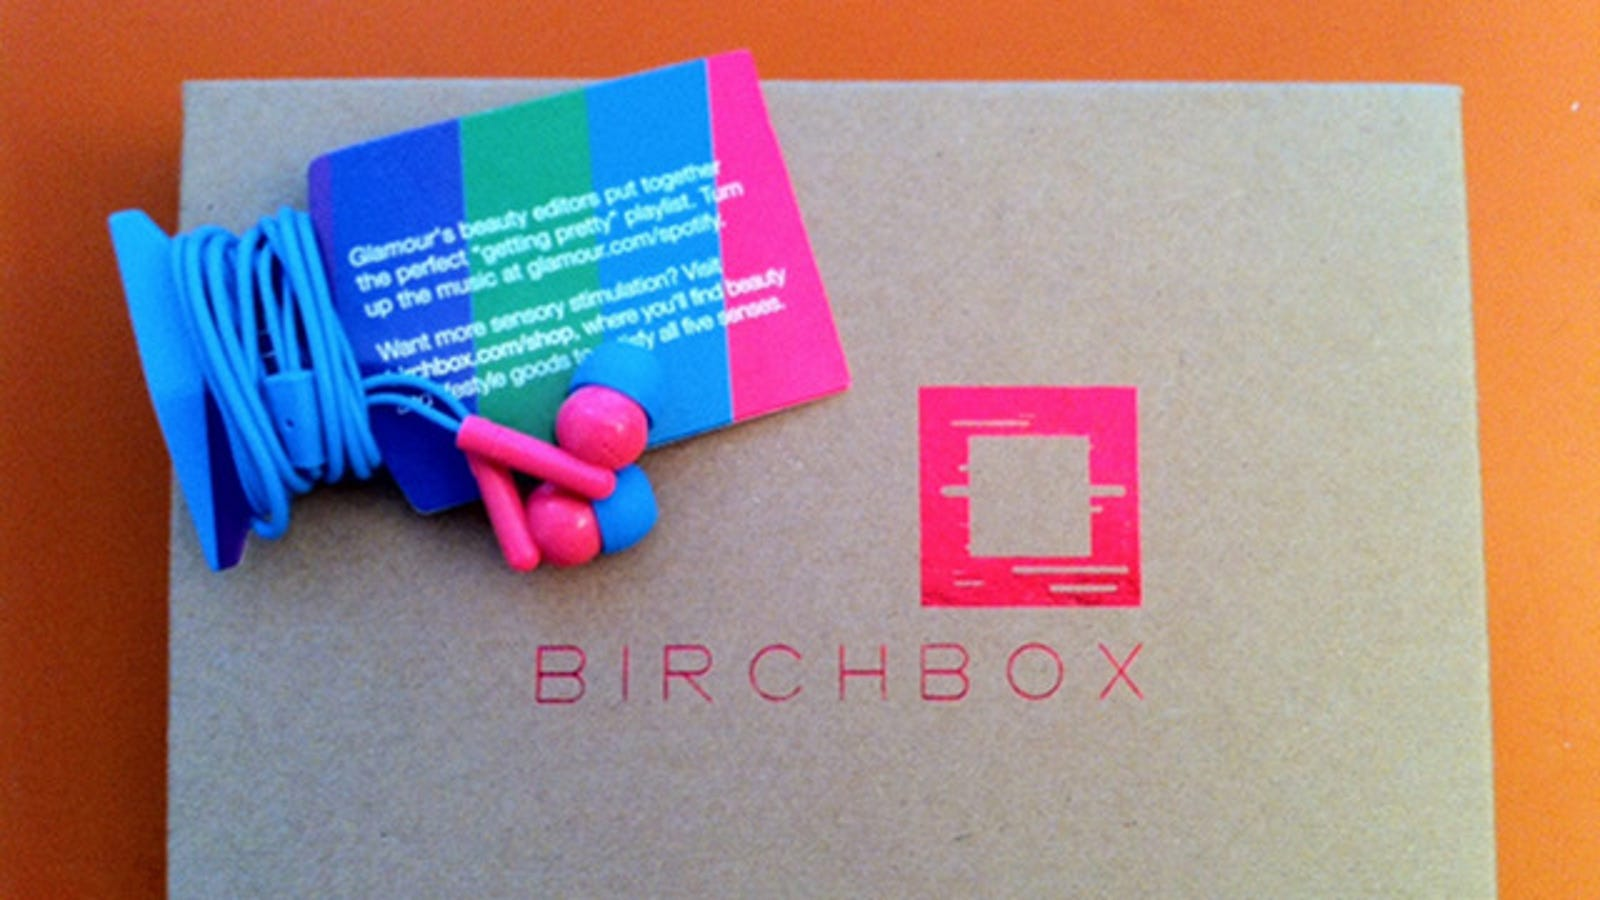 apple earbuds new iphone - Birchbox: At Least Those Crappy Earbuds Are Cute!